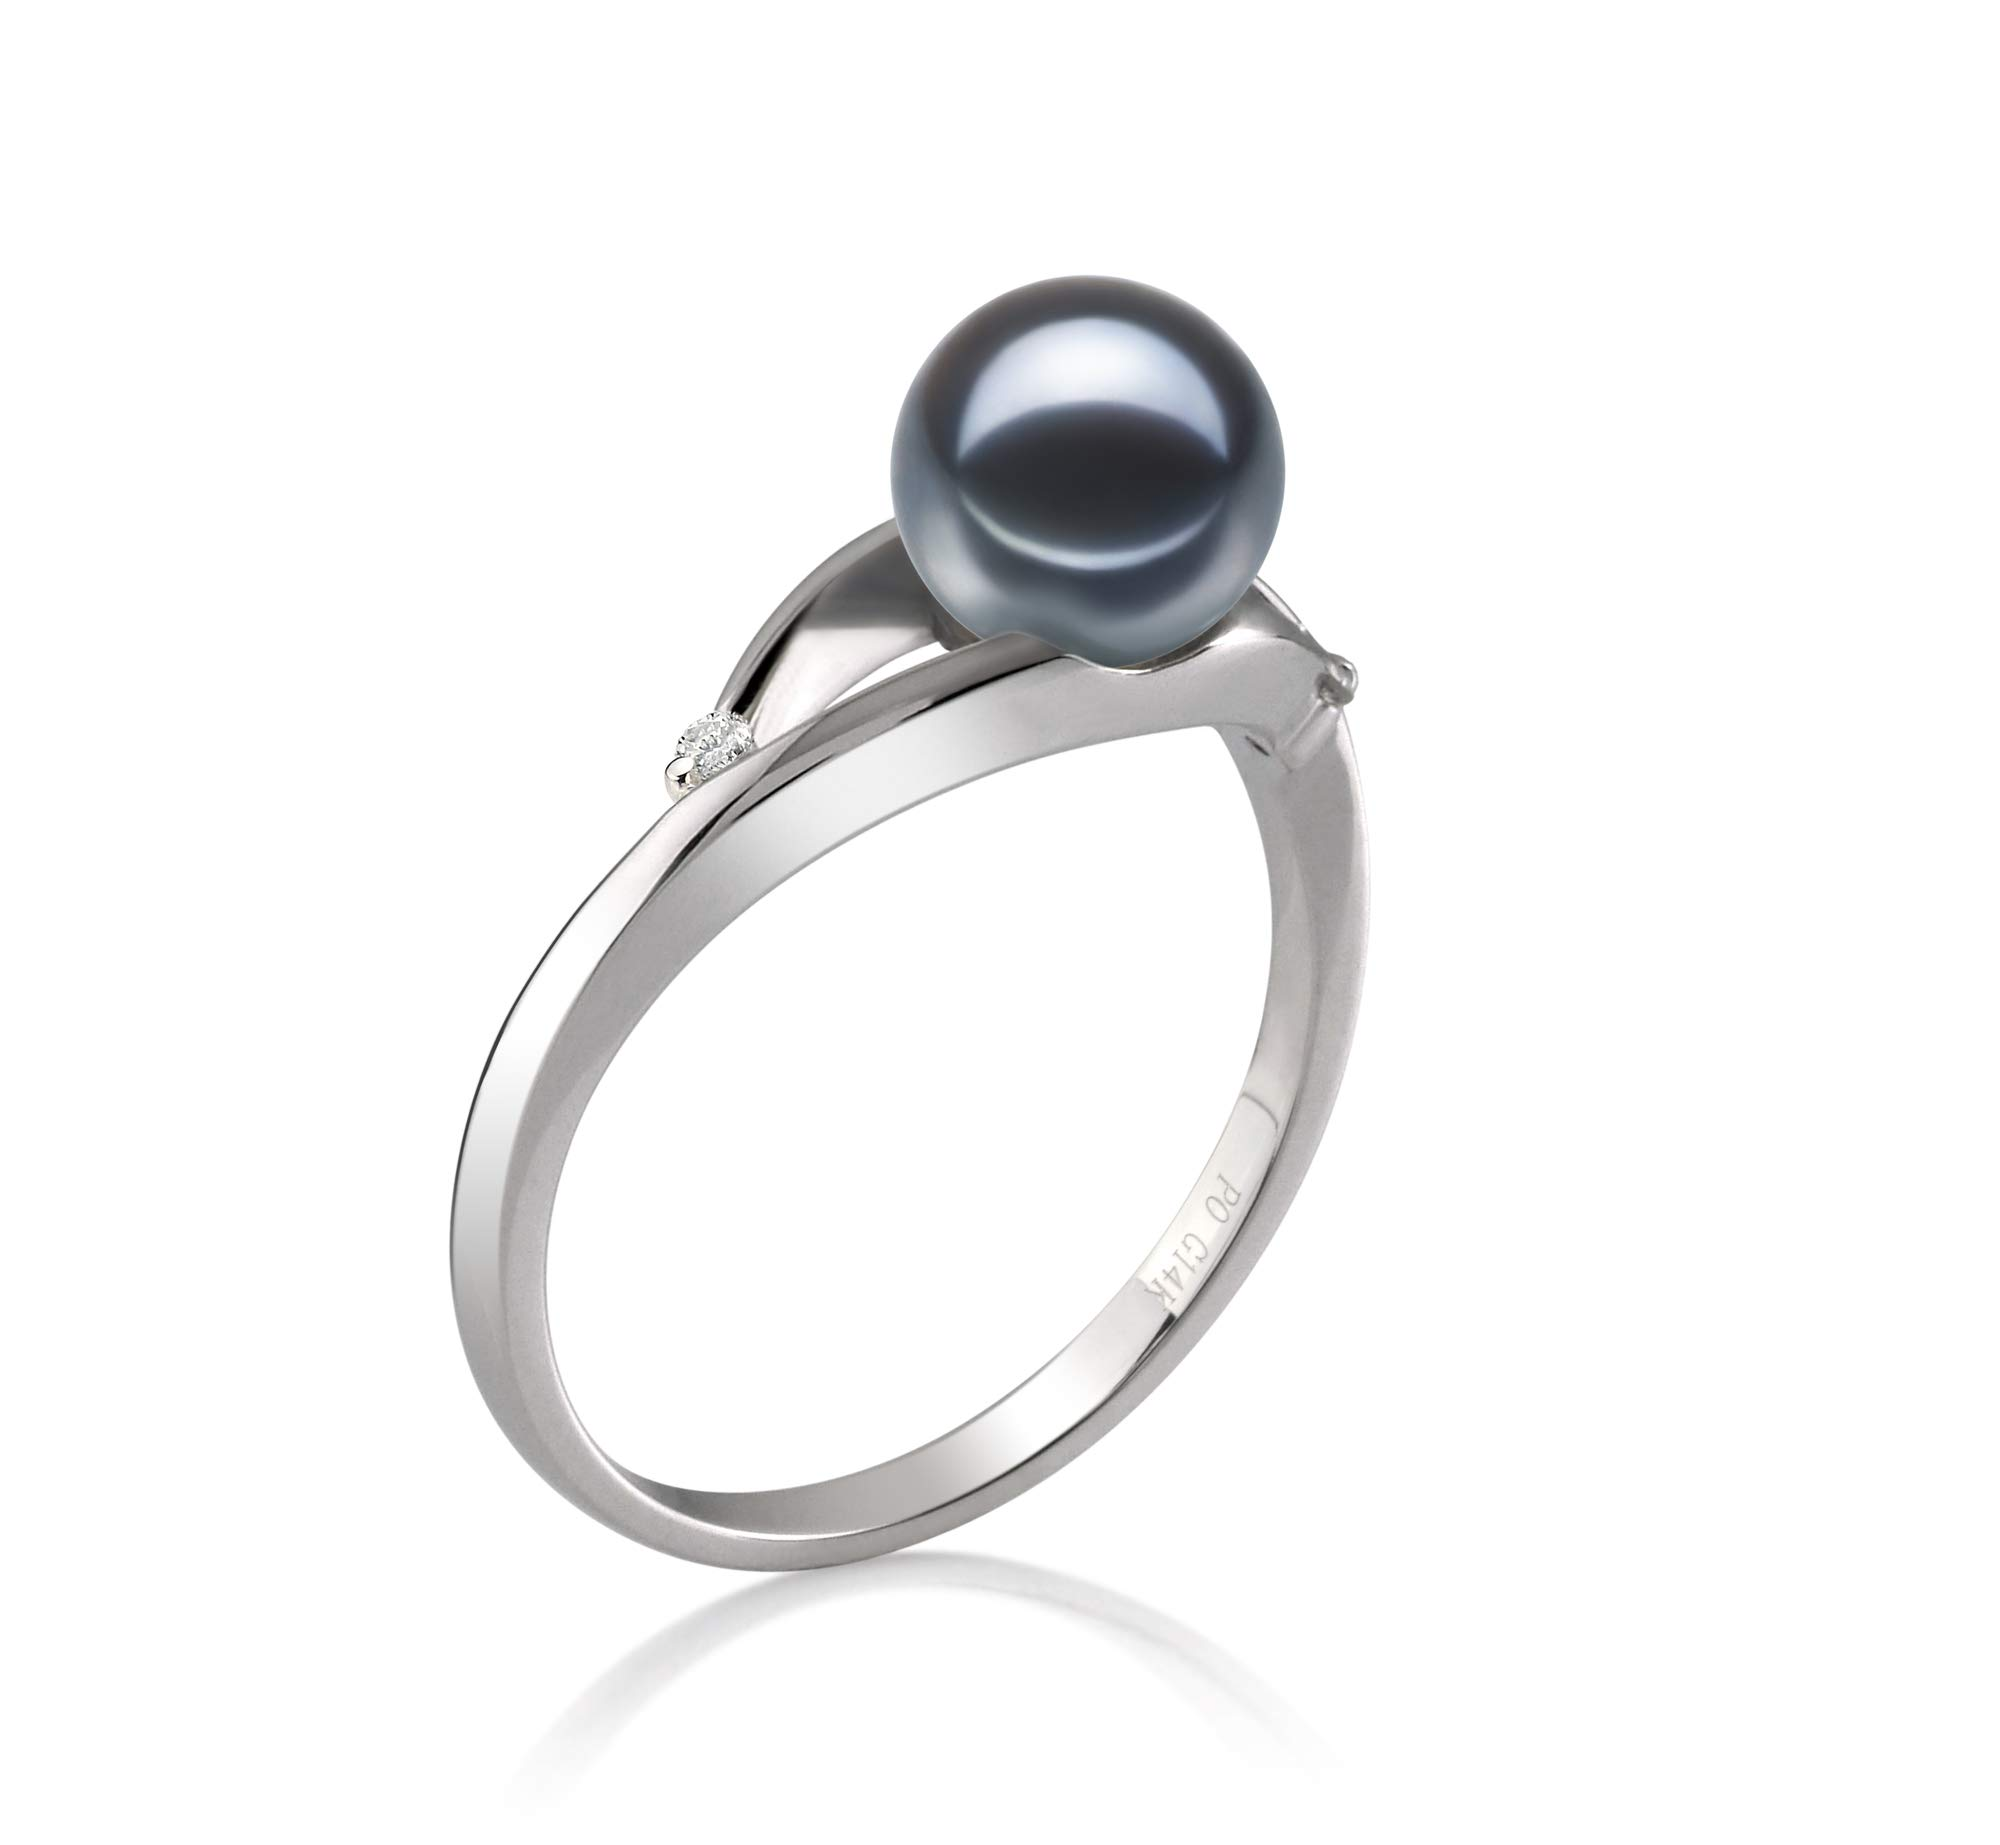 Tanya Black 6-7mm AAAA Quality Freshwater 14K White Gold Cultured Pearl Ring For Women - Size-7 by PearlsOnly (Image #2)